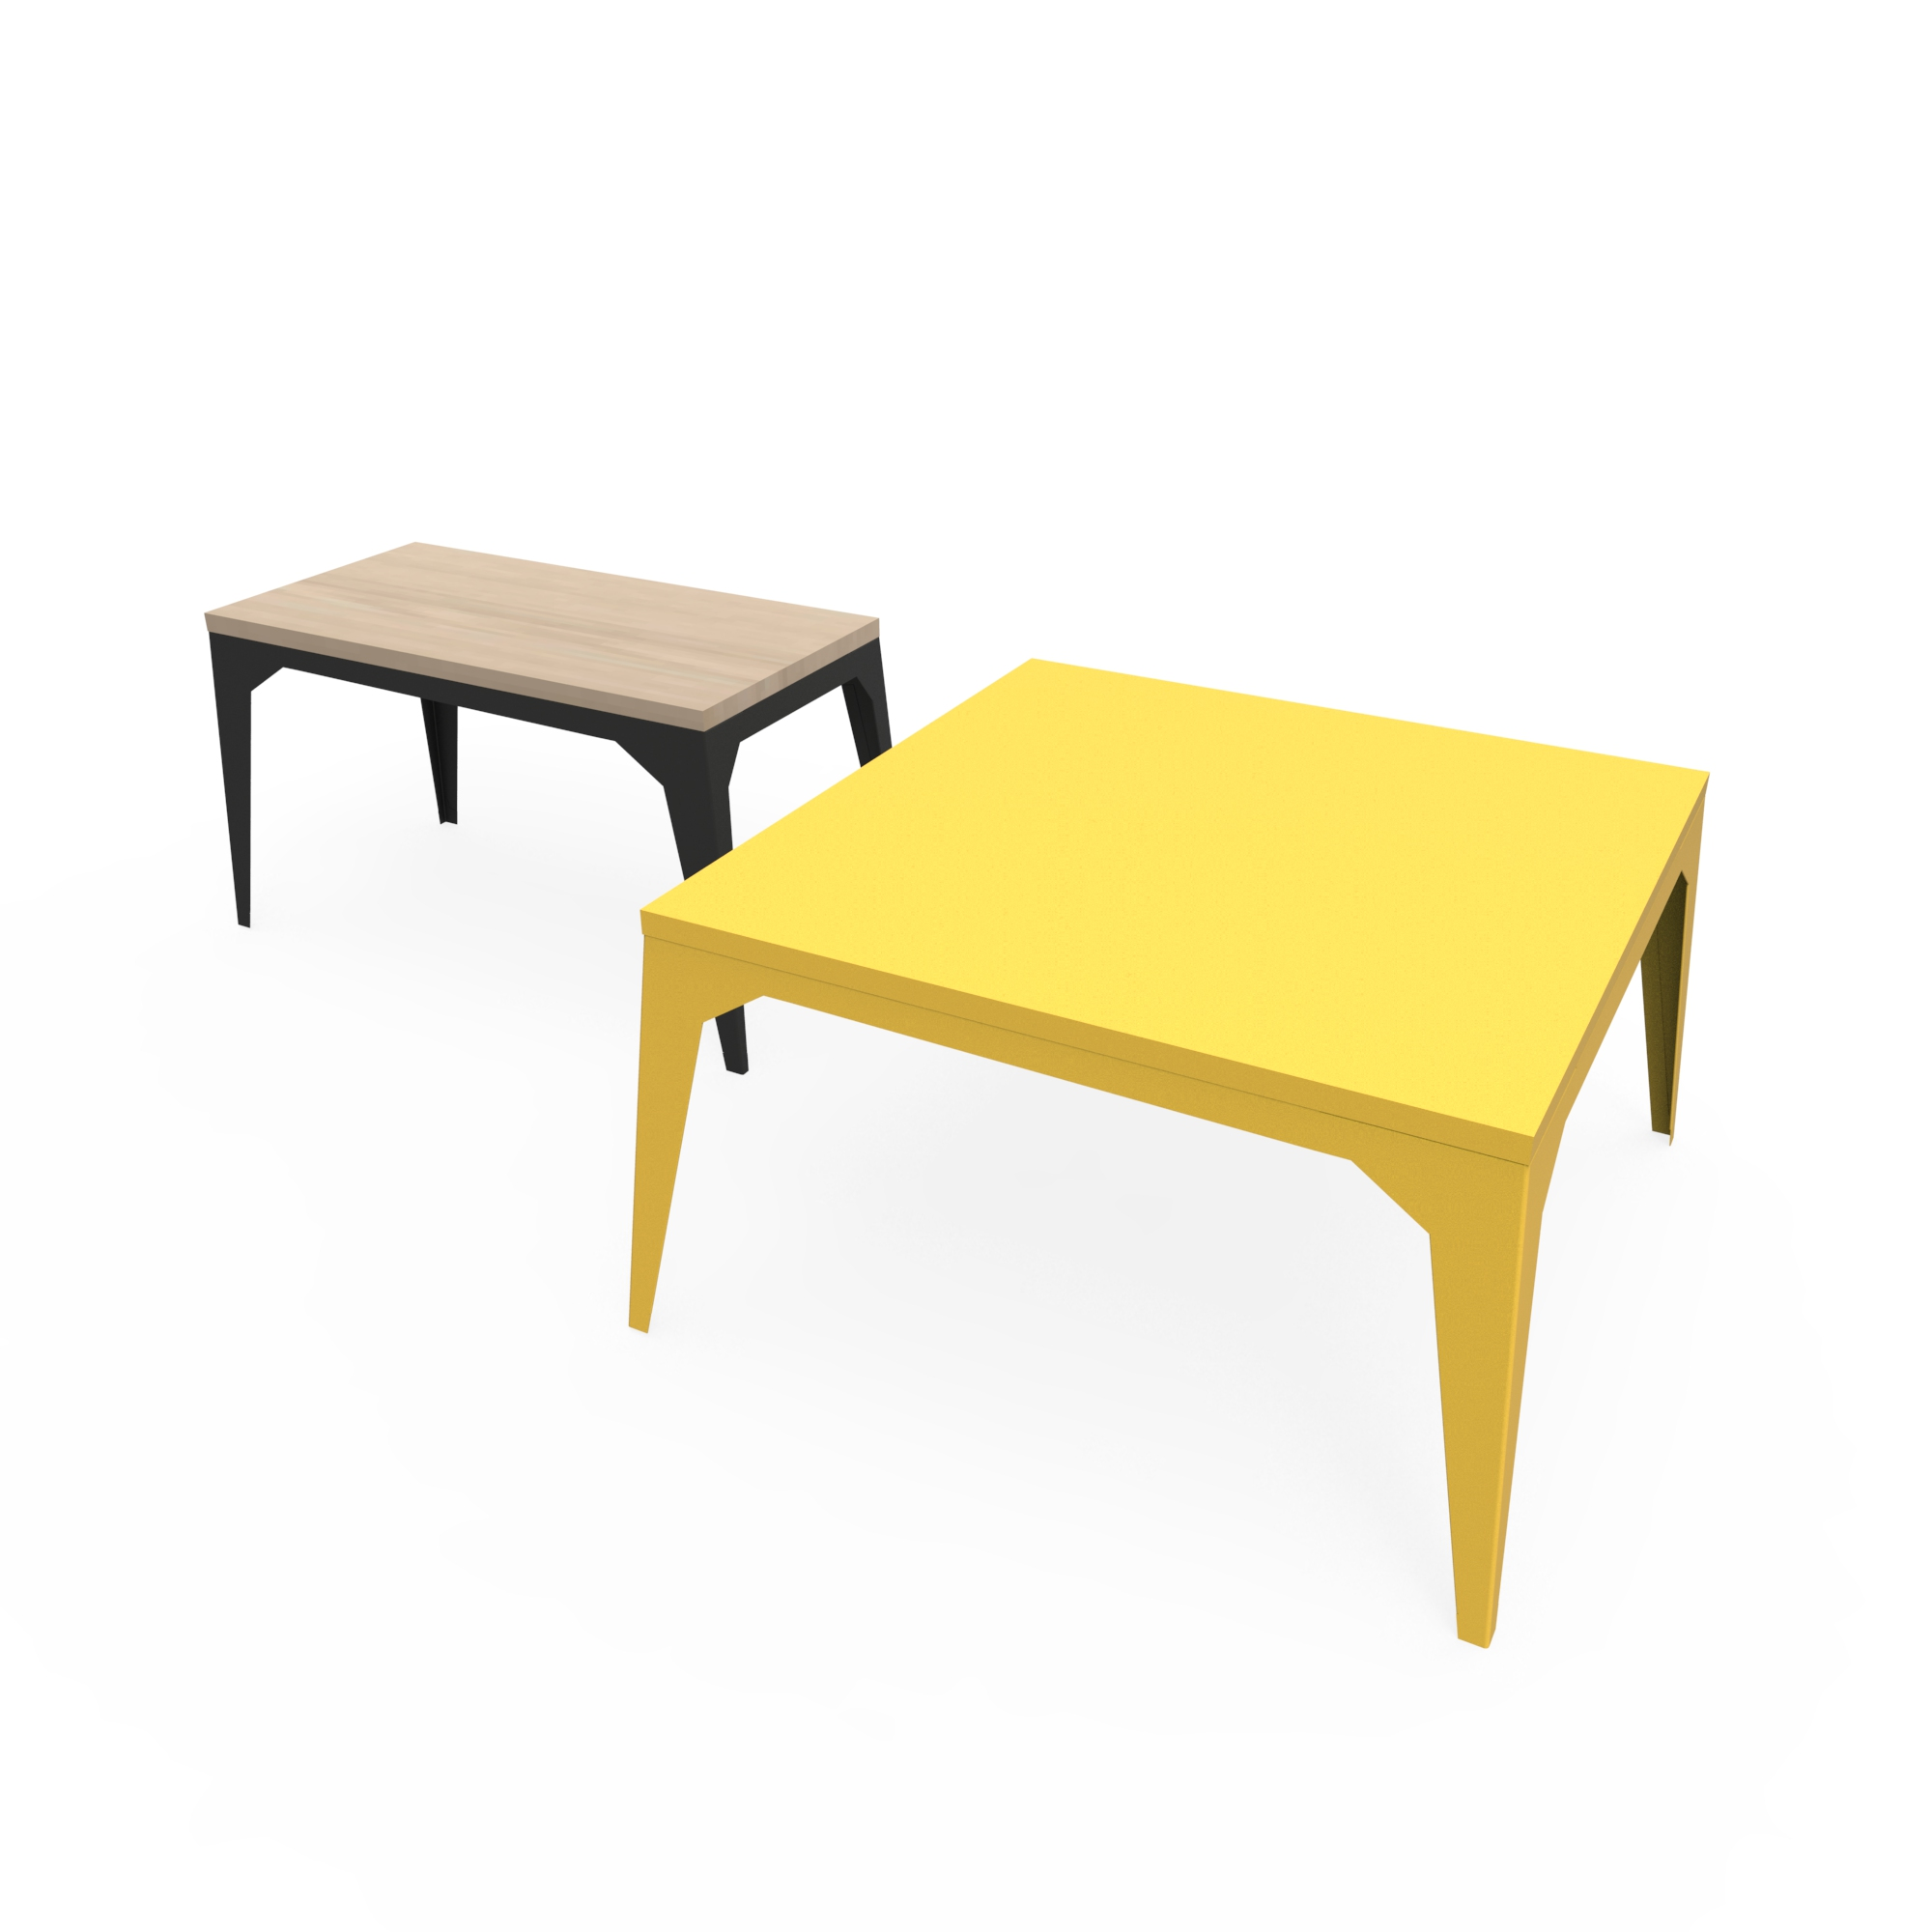 Cuatro coffee tables zhed for Table basse 100x100